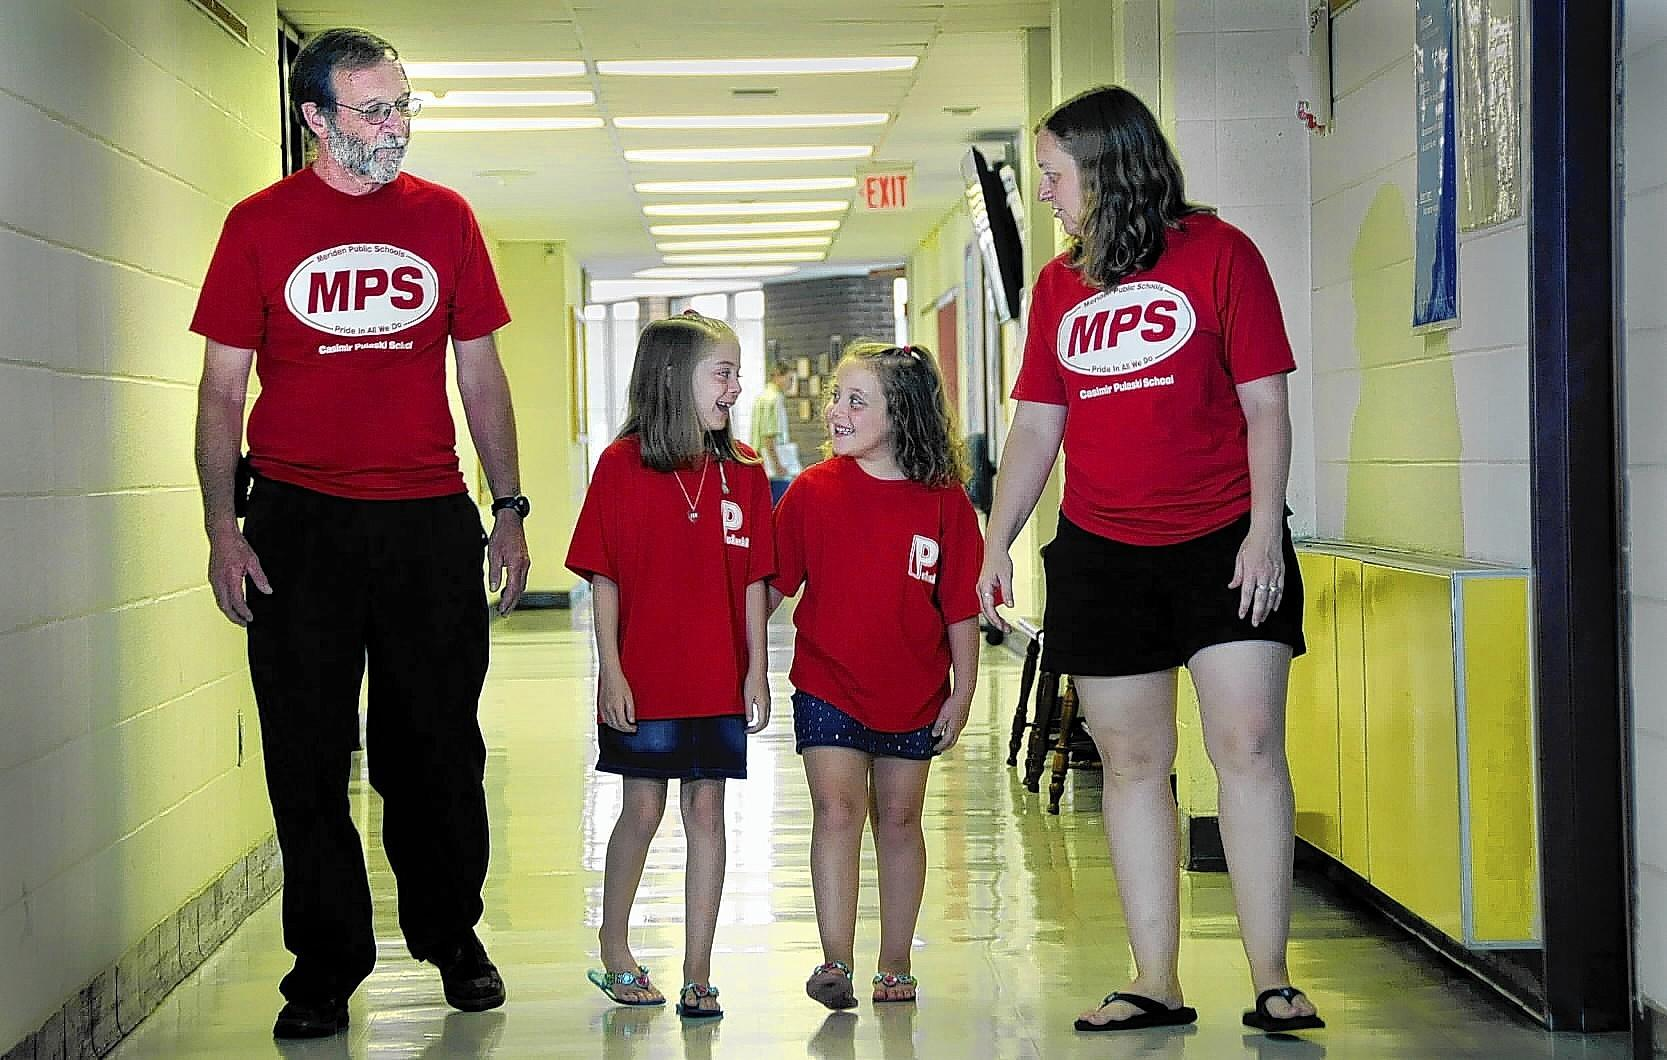 Three generations of Pulaski School teachers and students walk down the hall of the school Tuesday. From left, David Wheeler, 5th grade teacher in his 45th year, his granddaughters, Emily Anastasio, 9, and Katie Anastasio, 6, and his daughter, Jeanne Anastasio, a second grade teacher at the school in her 16th year. Both Wheeler and his daughter are involved in the school's extended learning time program.